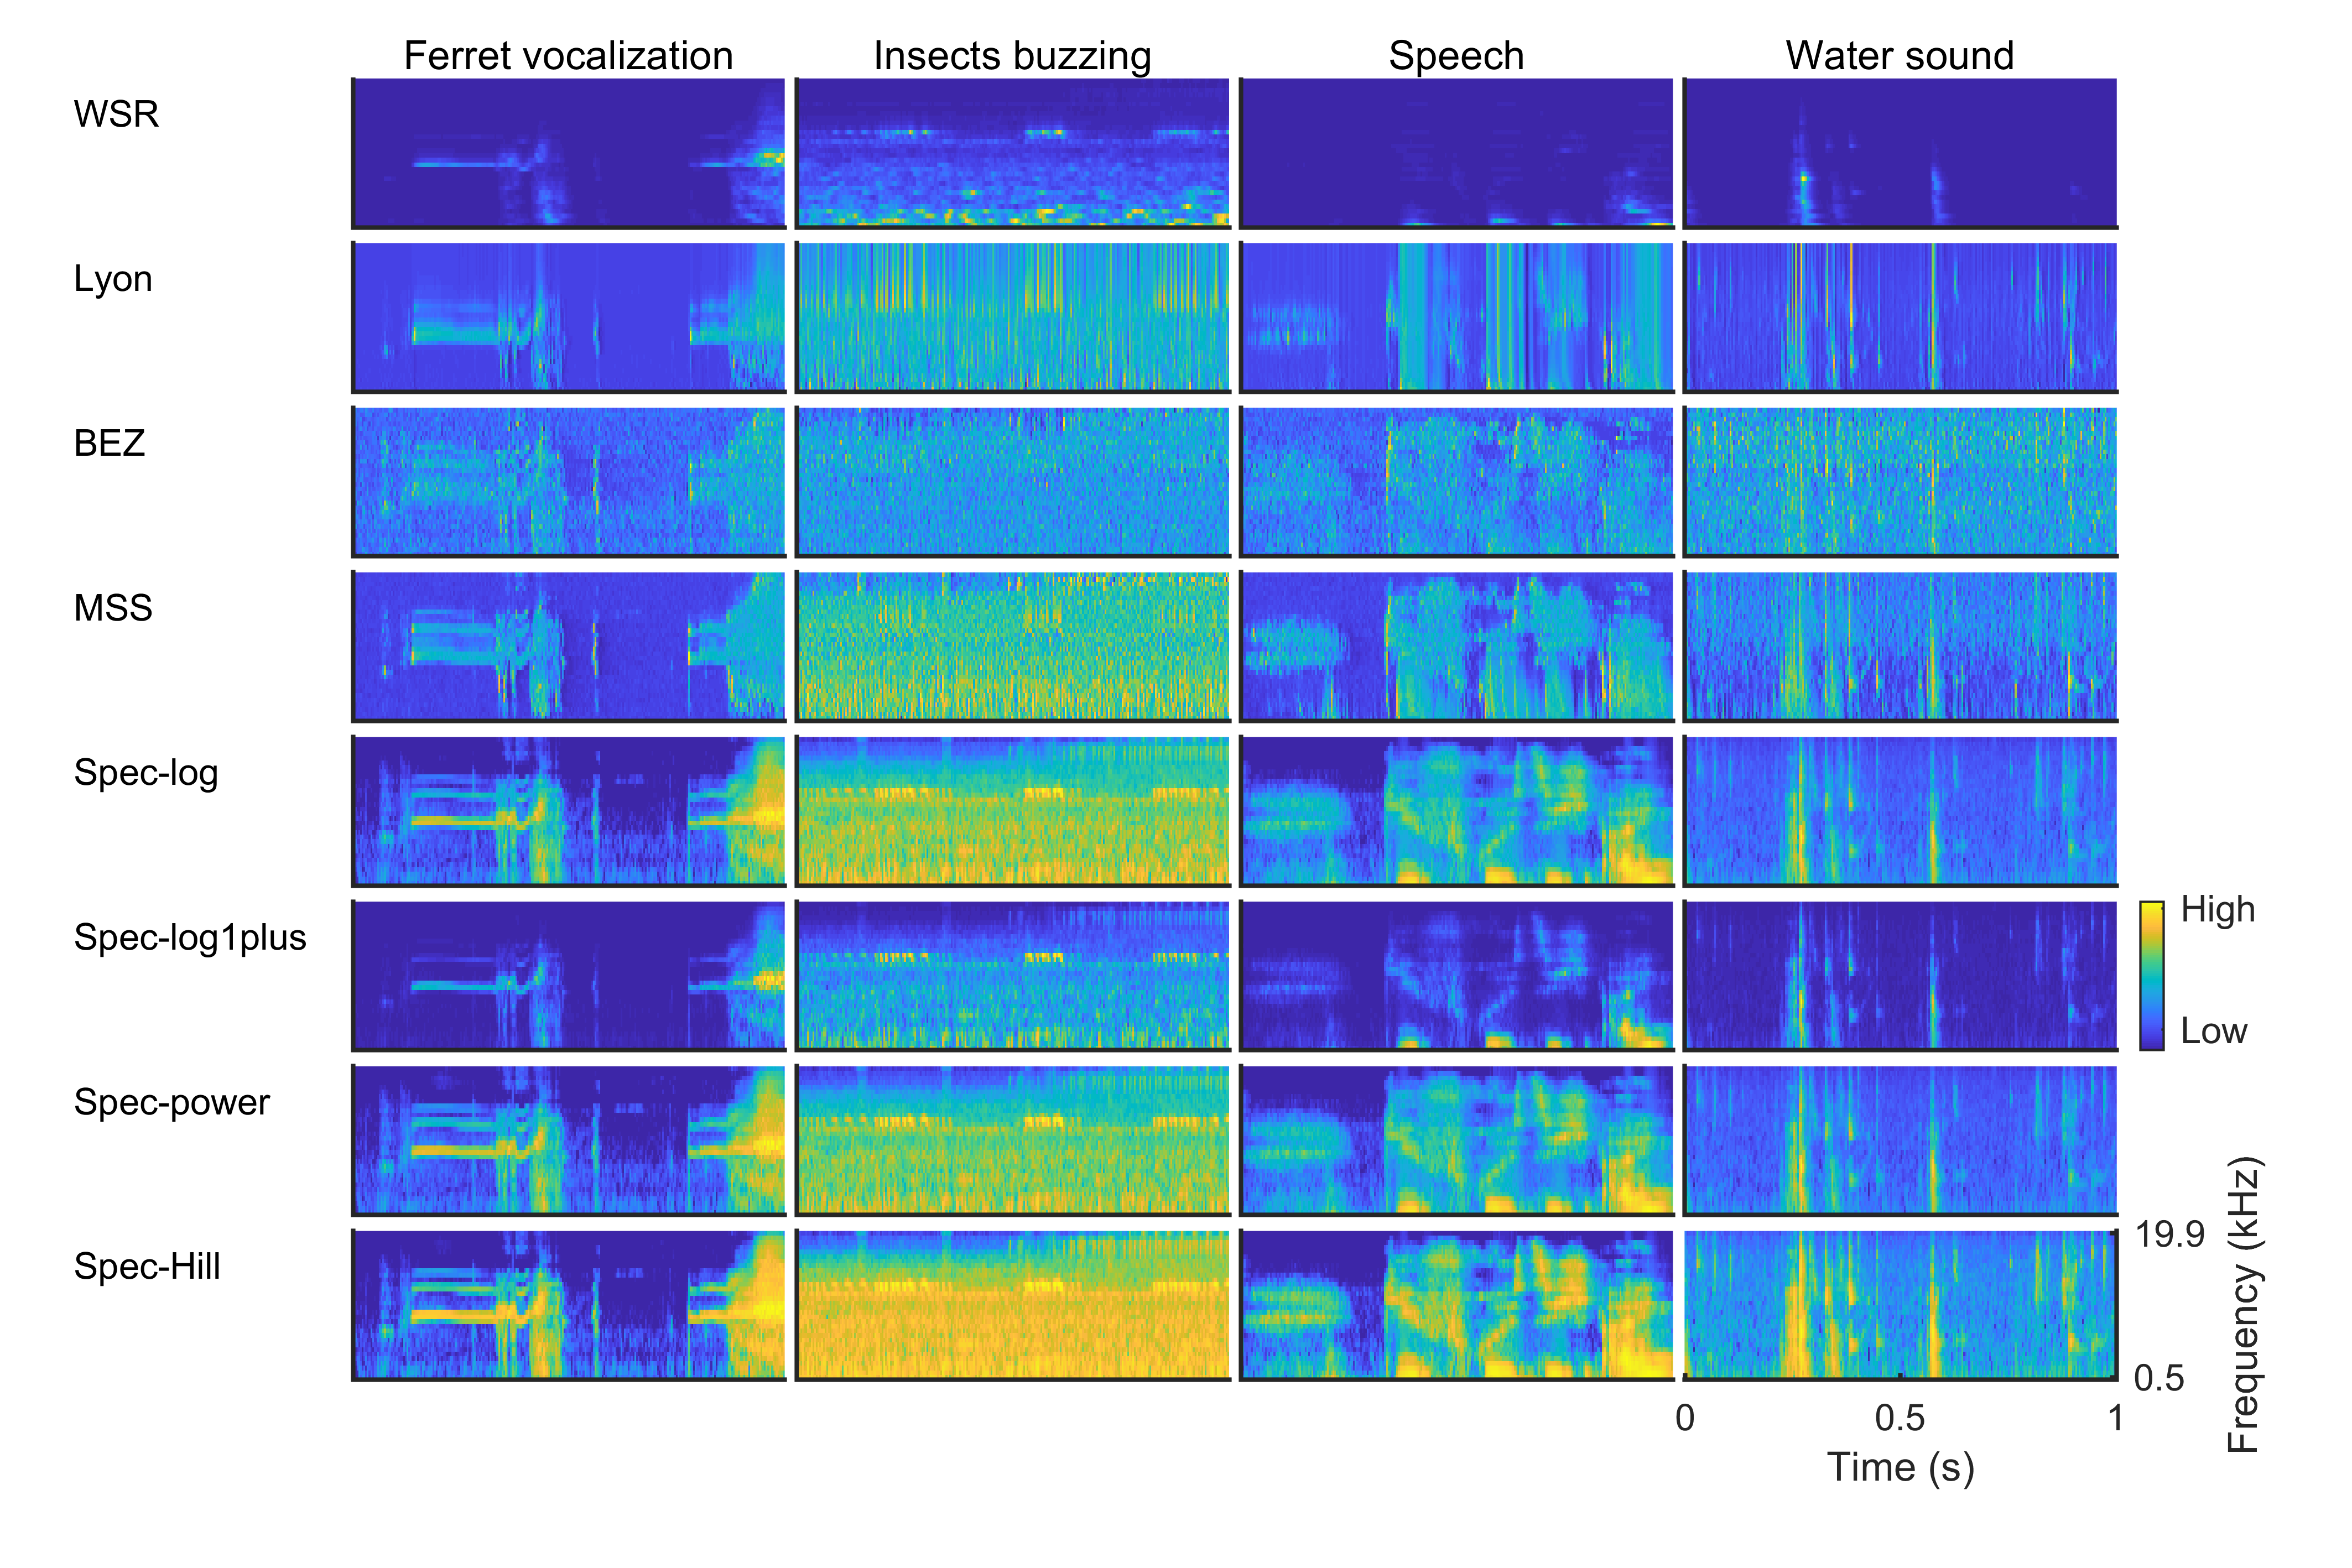 Cochleagrams showing frequencies ranging from high to low produced by each cochlear model when exposed to four natural sounds: ferret vocalization, insects buzzing, speech and water sound.